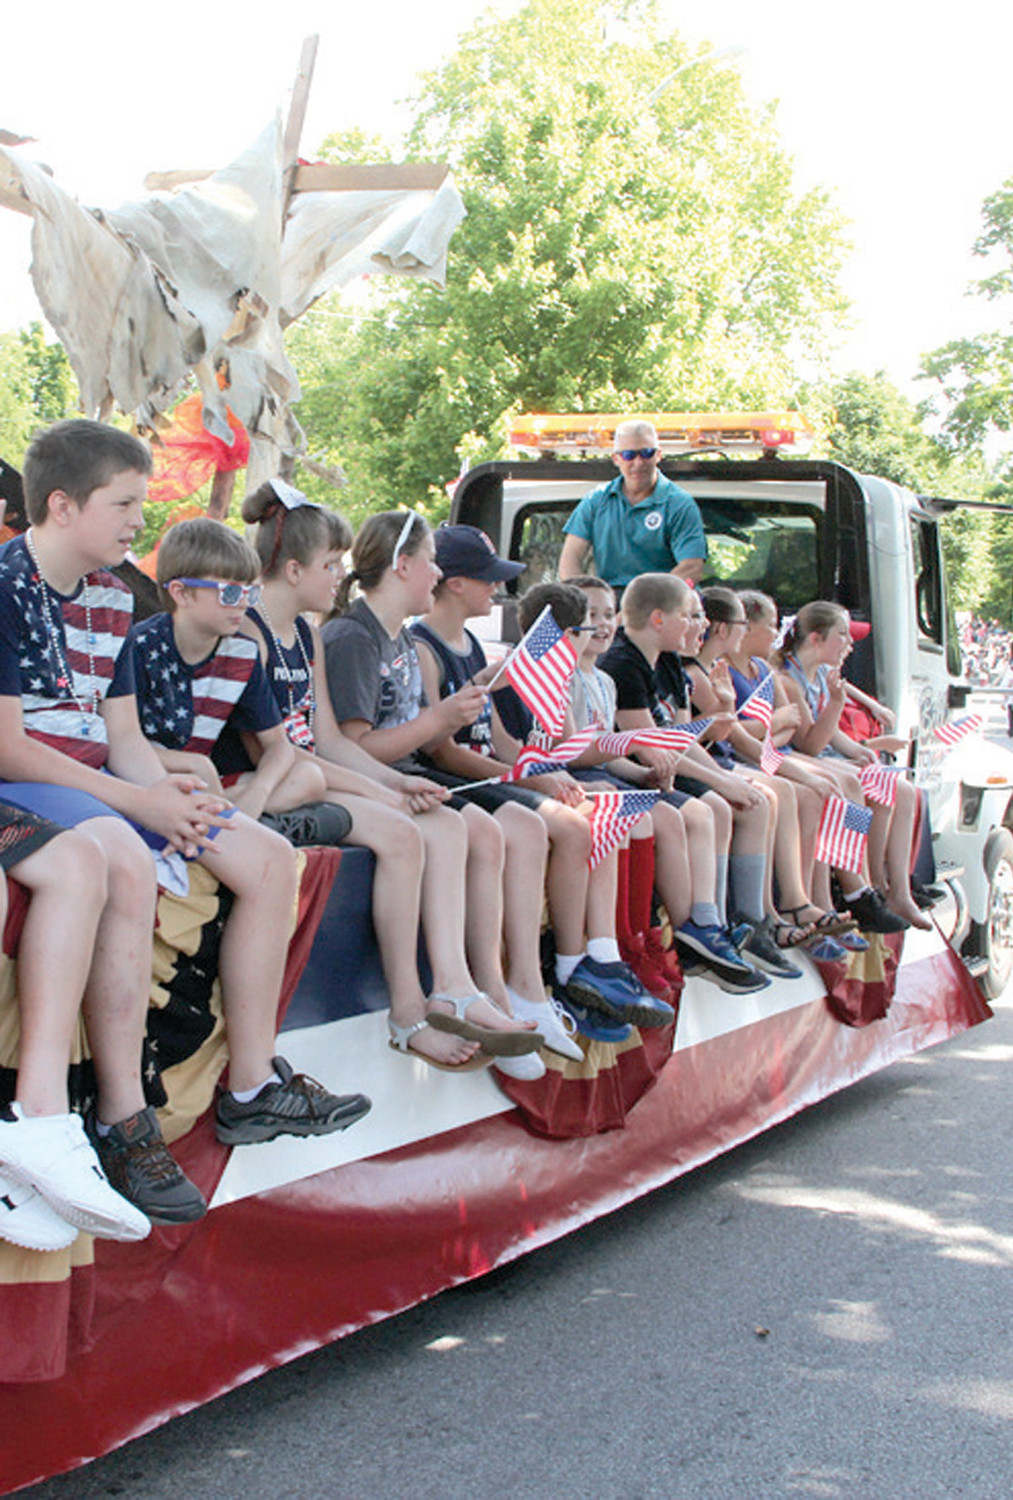 SCHOOL ON THE GO: Hoxsie School students got to experience the parade from the school float.